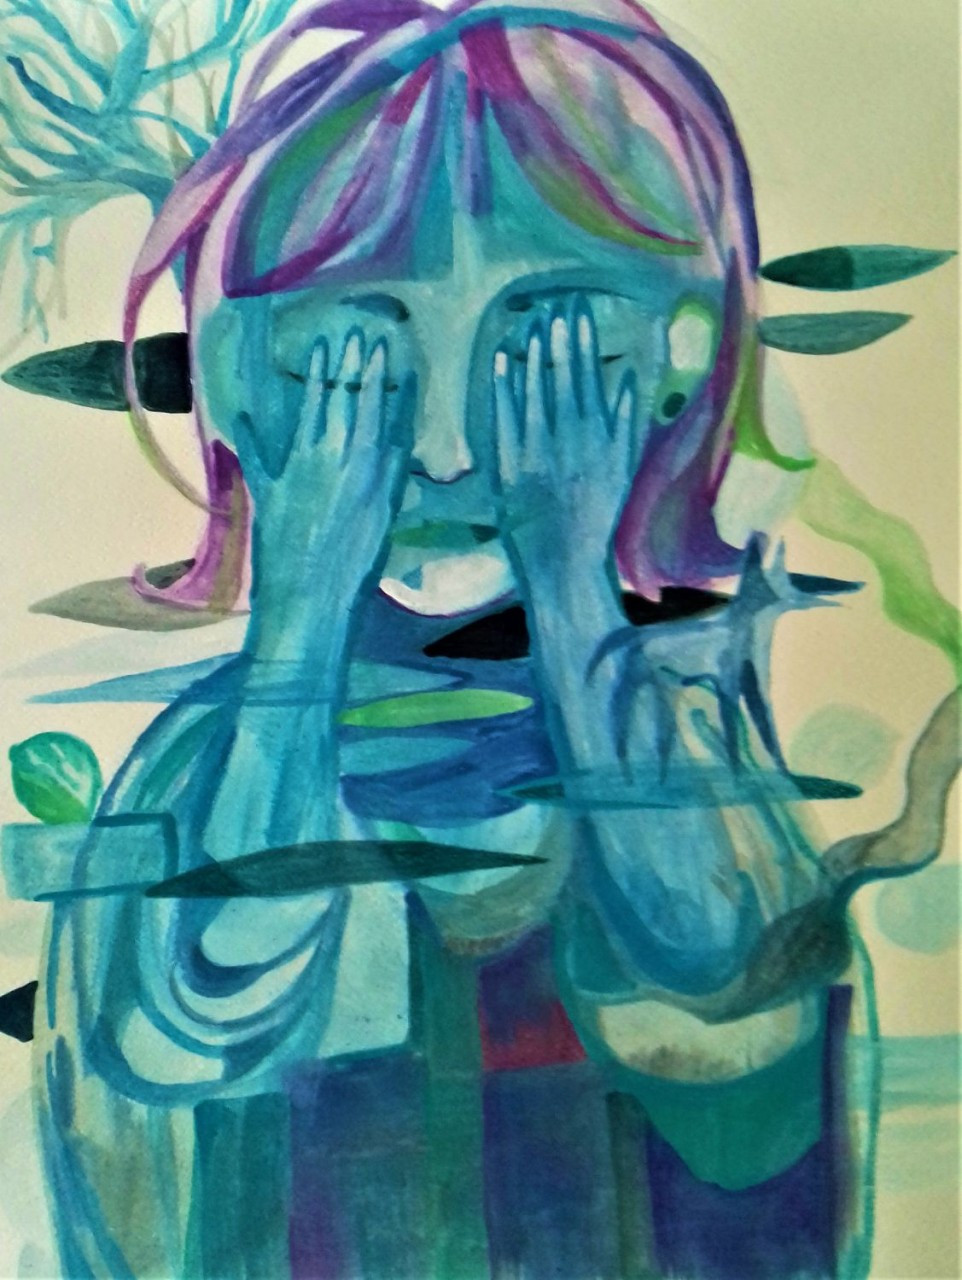 An image painted in watercolor of a person with blue skin and short purple hair, covering their eyes. Shapes and animals can be made out behind and in front of them.